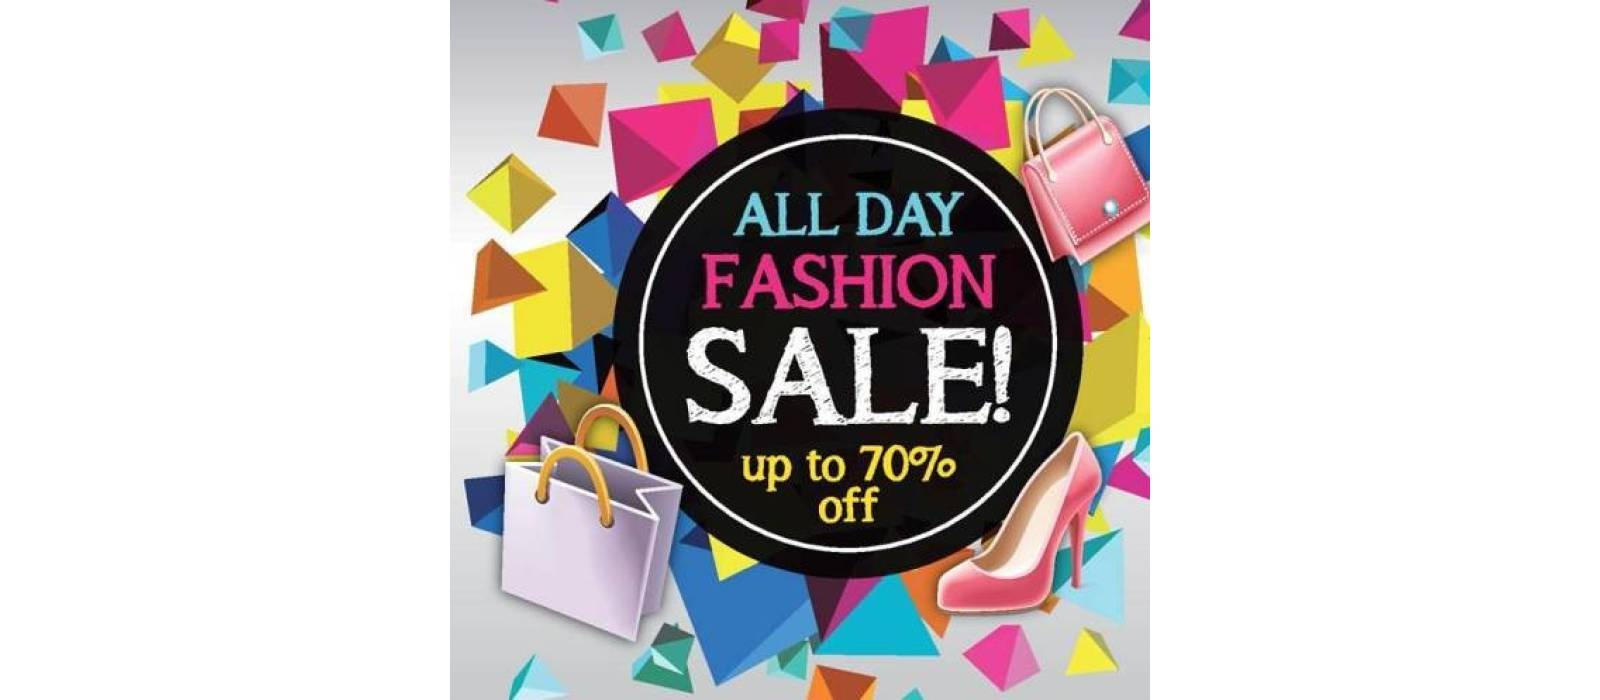 All Day Fashion Sale - 1